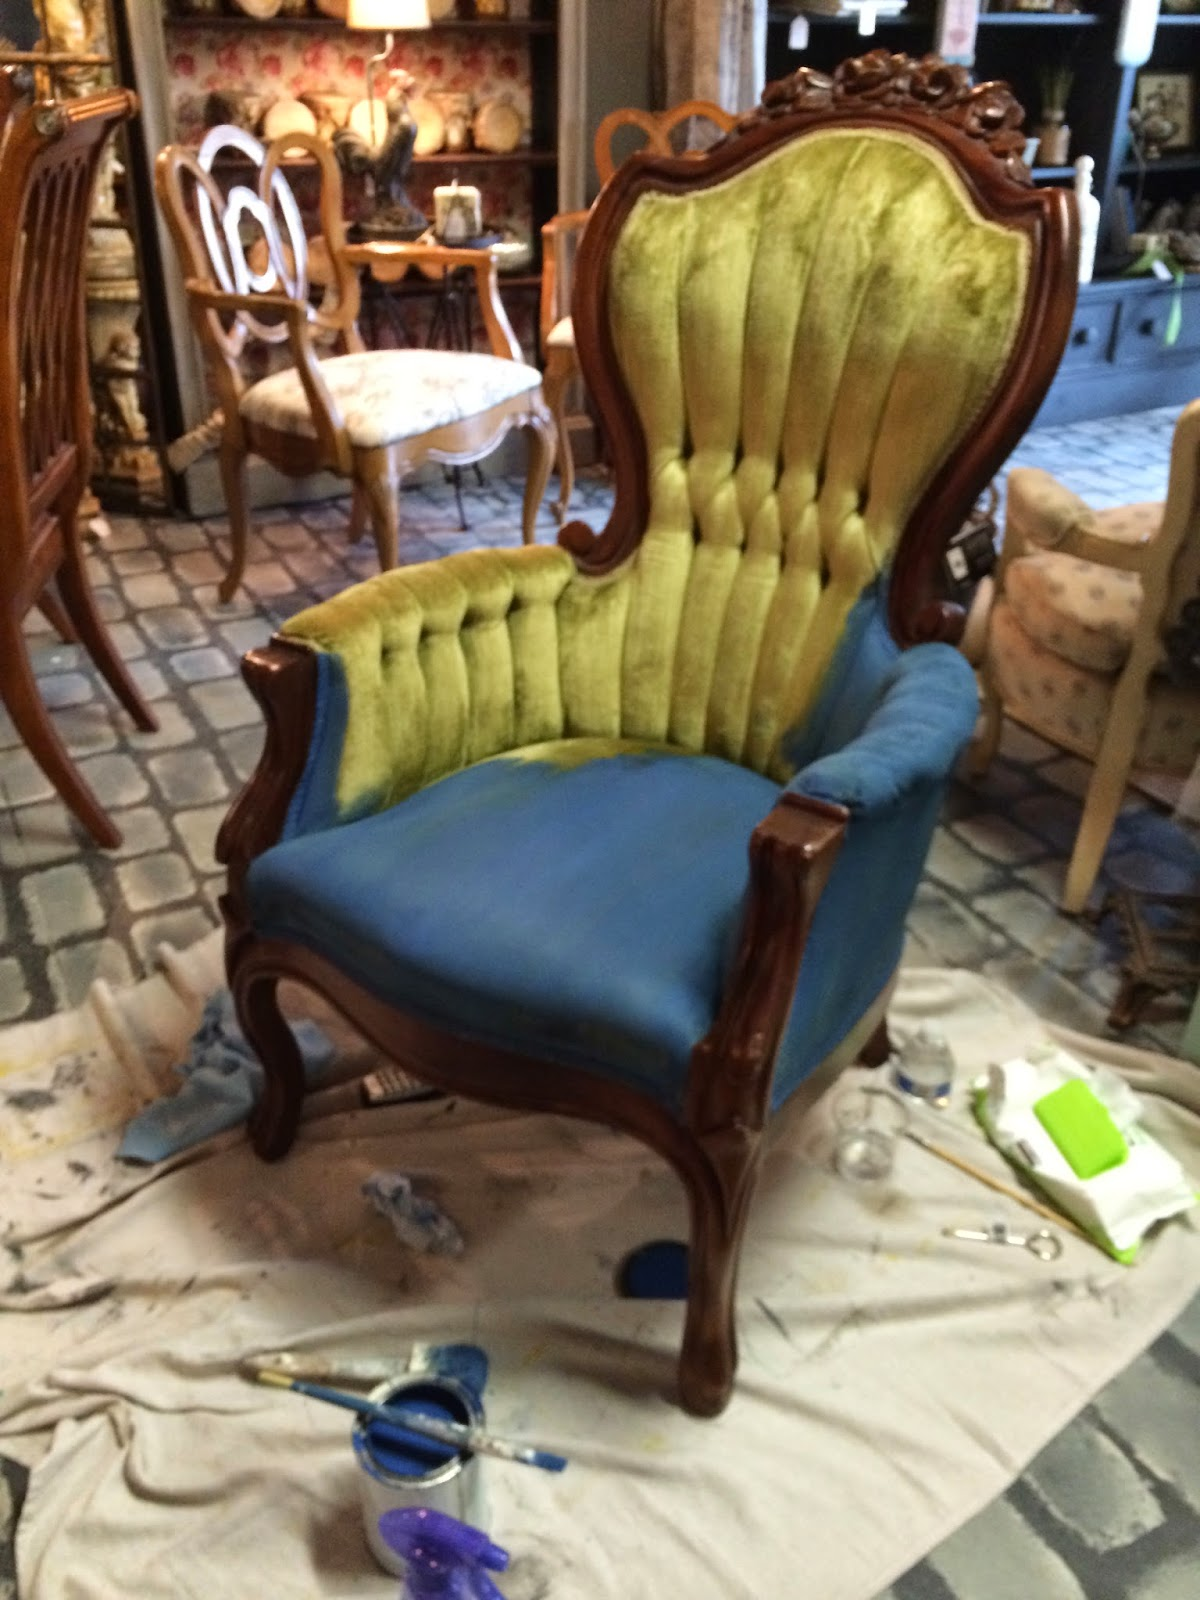 Velvet Chair Design Folding High Booster Seat Maison Decor How To Paint Chairs With Chalk By Annie Sloan Thursday July 31 2014